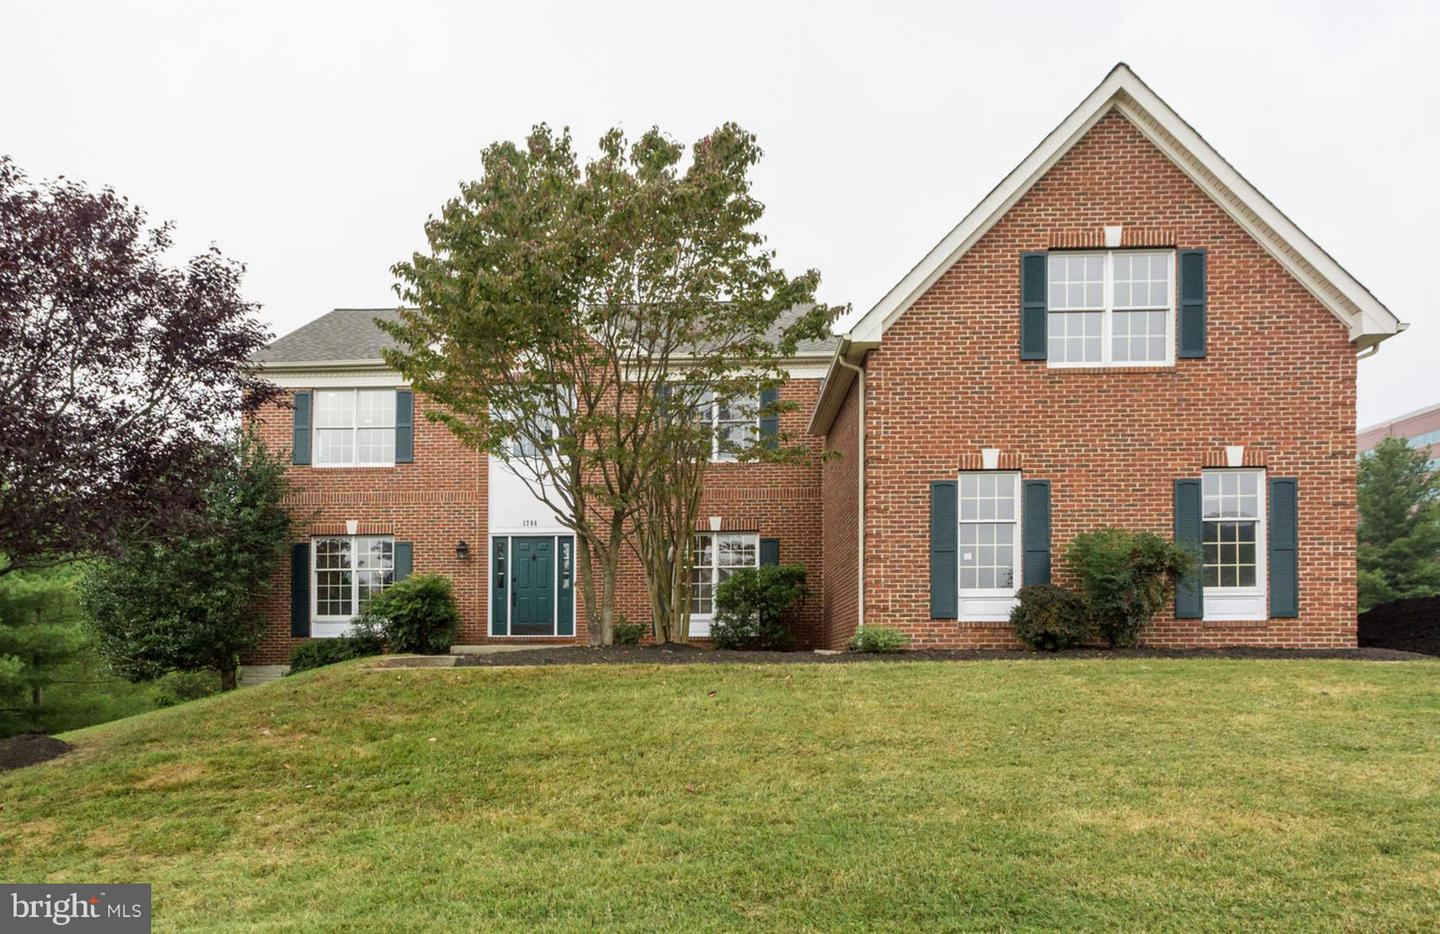 Single Family Home for Sale at 1786 Clovermeadow Drive 1786 Clovermeadow Drive Vienna, Virginia 22182 United States